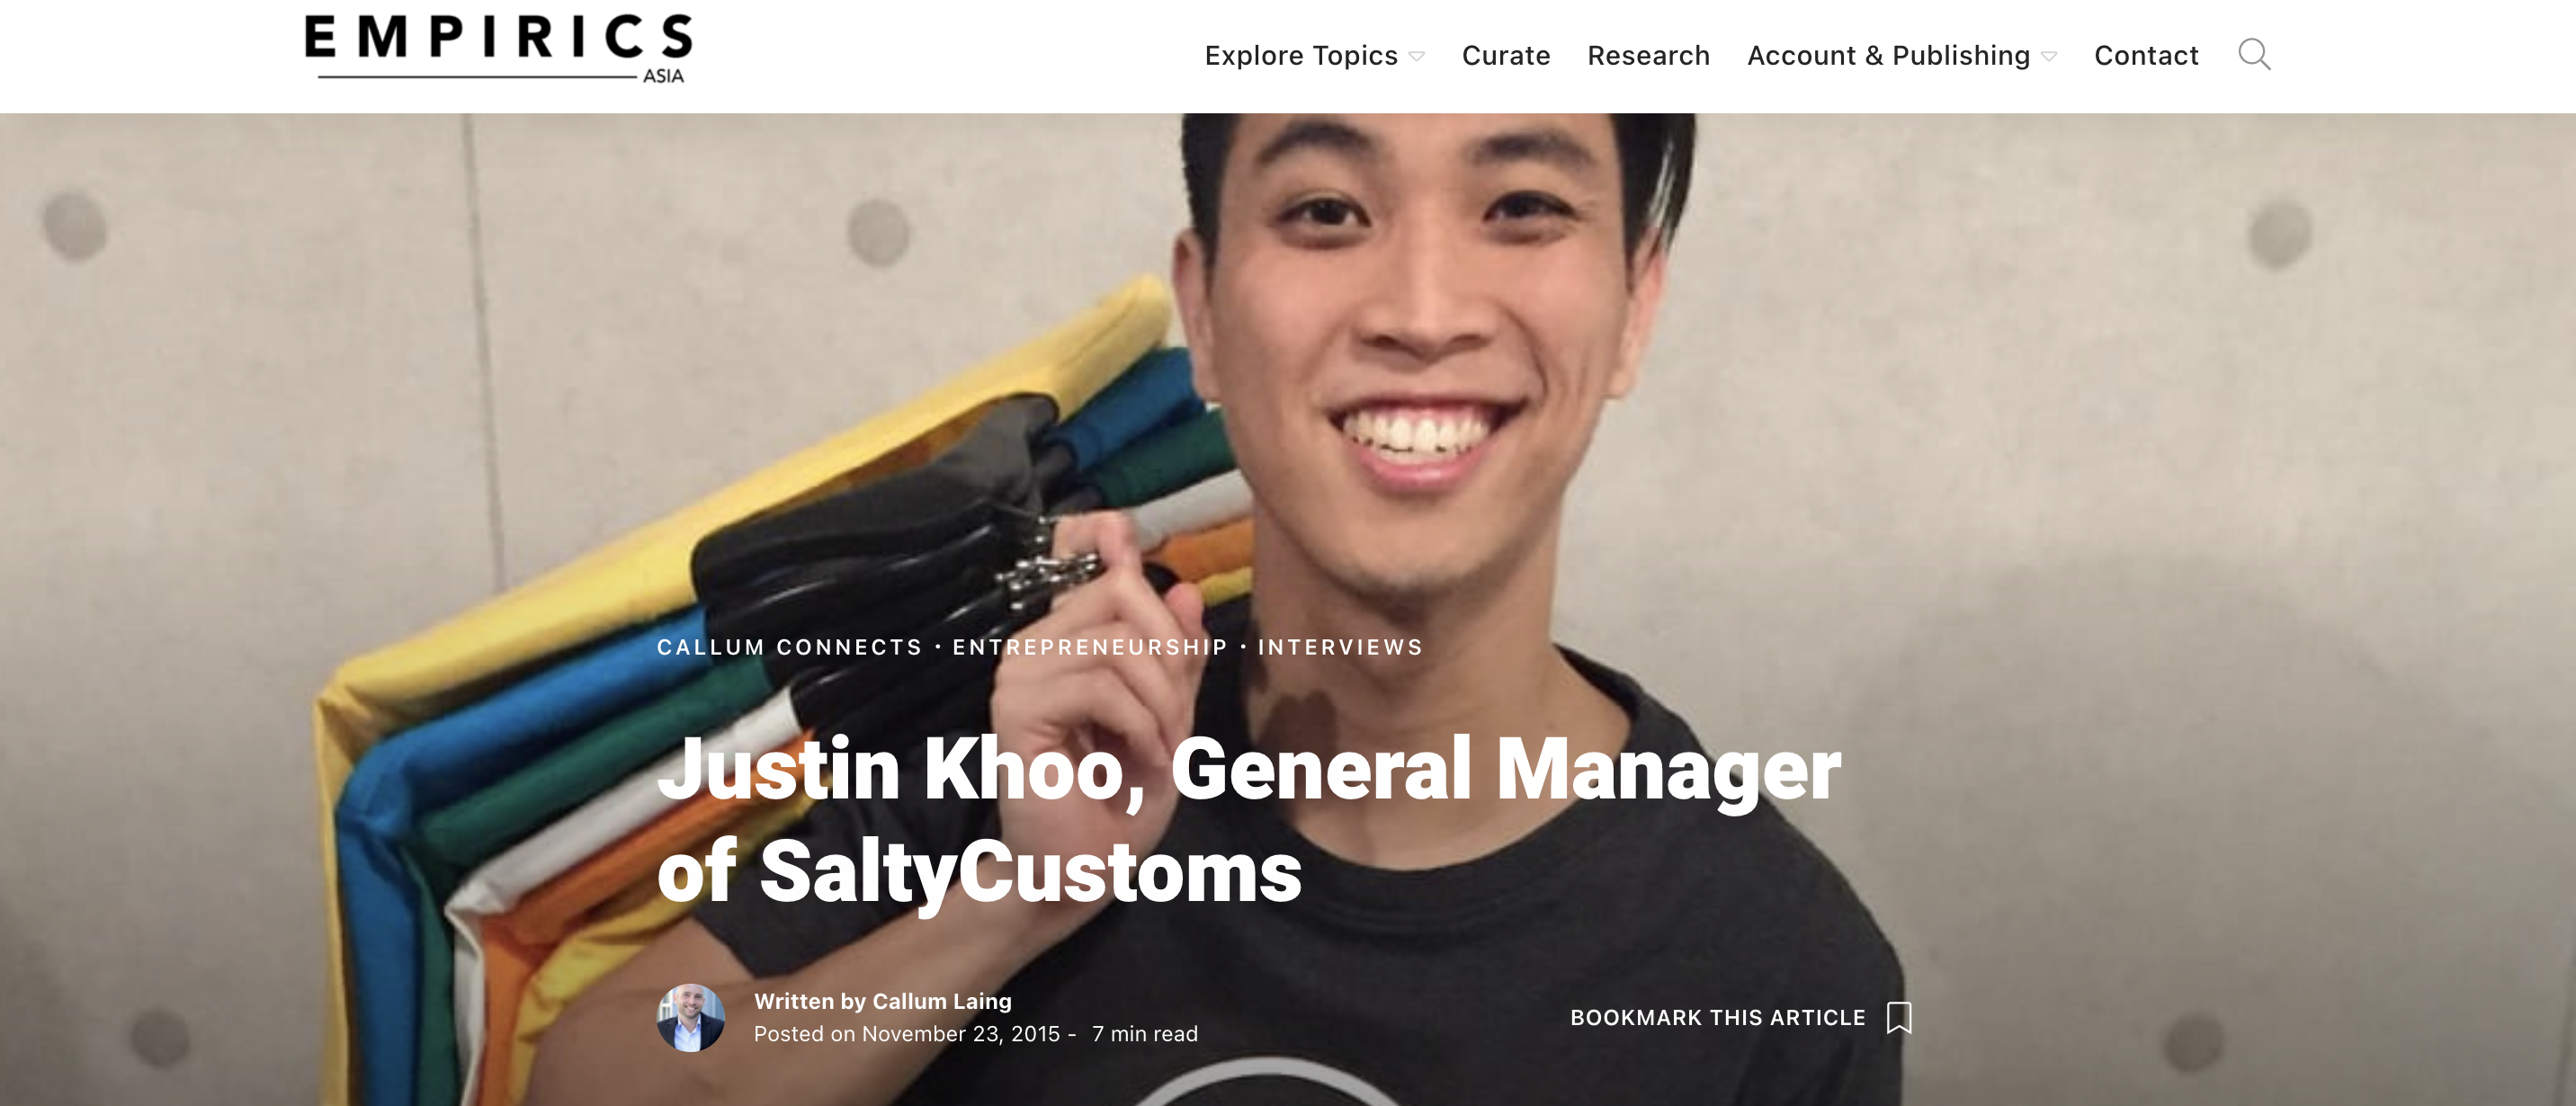 Justin Khoo, General Manager of SaltyCustoms